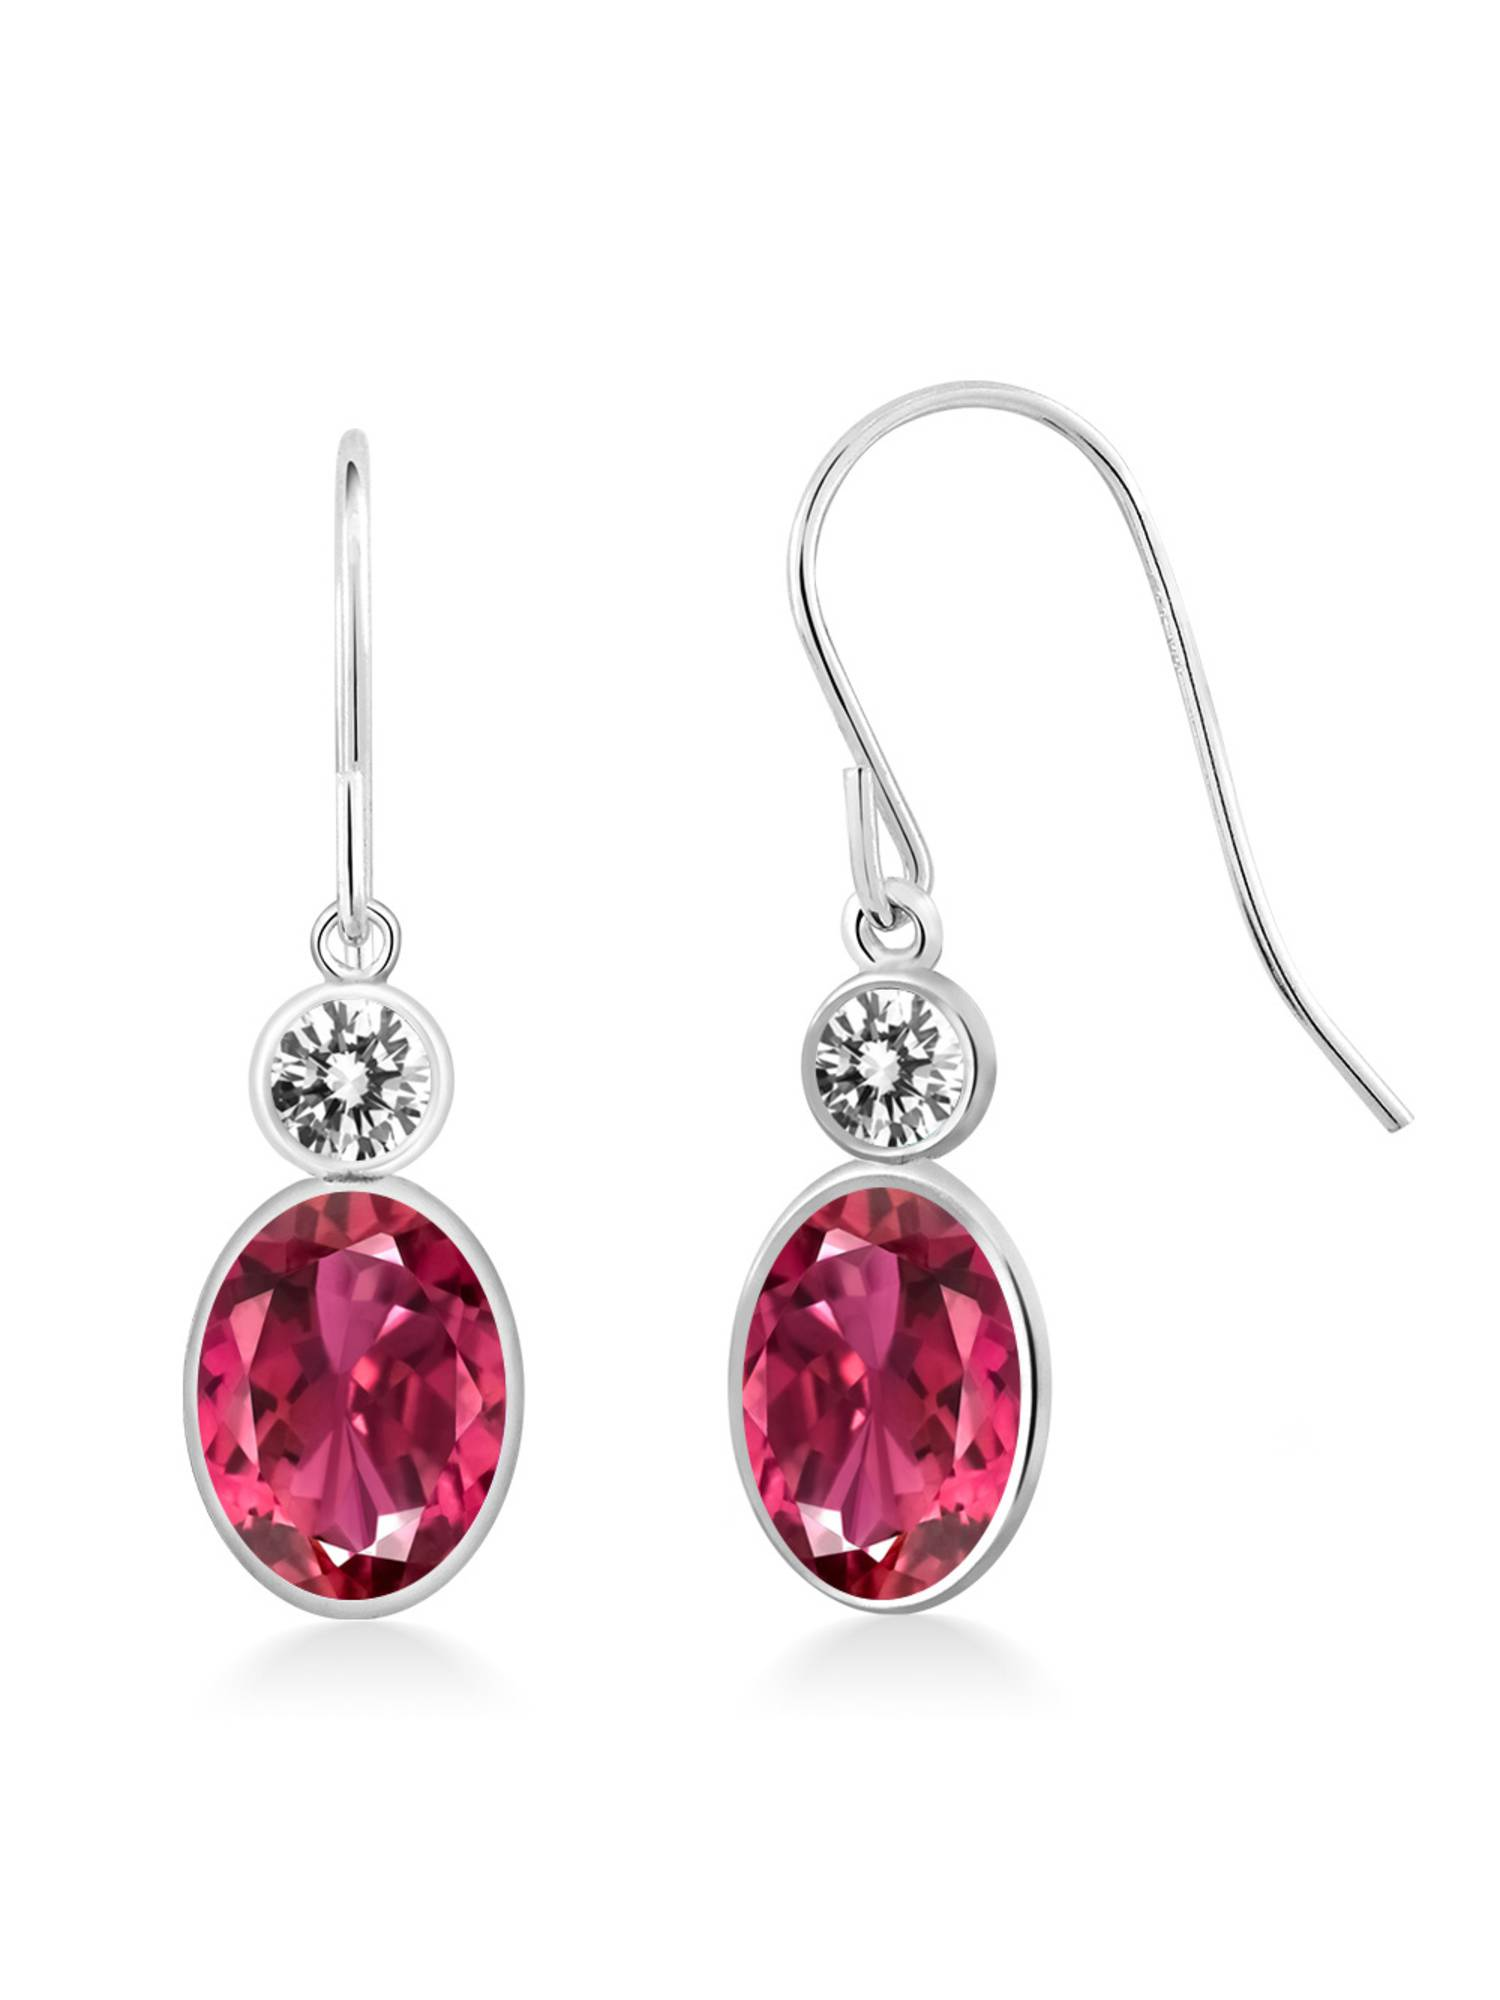 1.60 Ct Oval Pink Tourmaline AA White Diamond 14K White Gold Earrings by